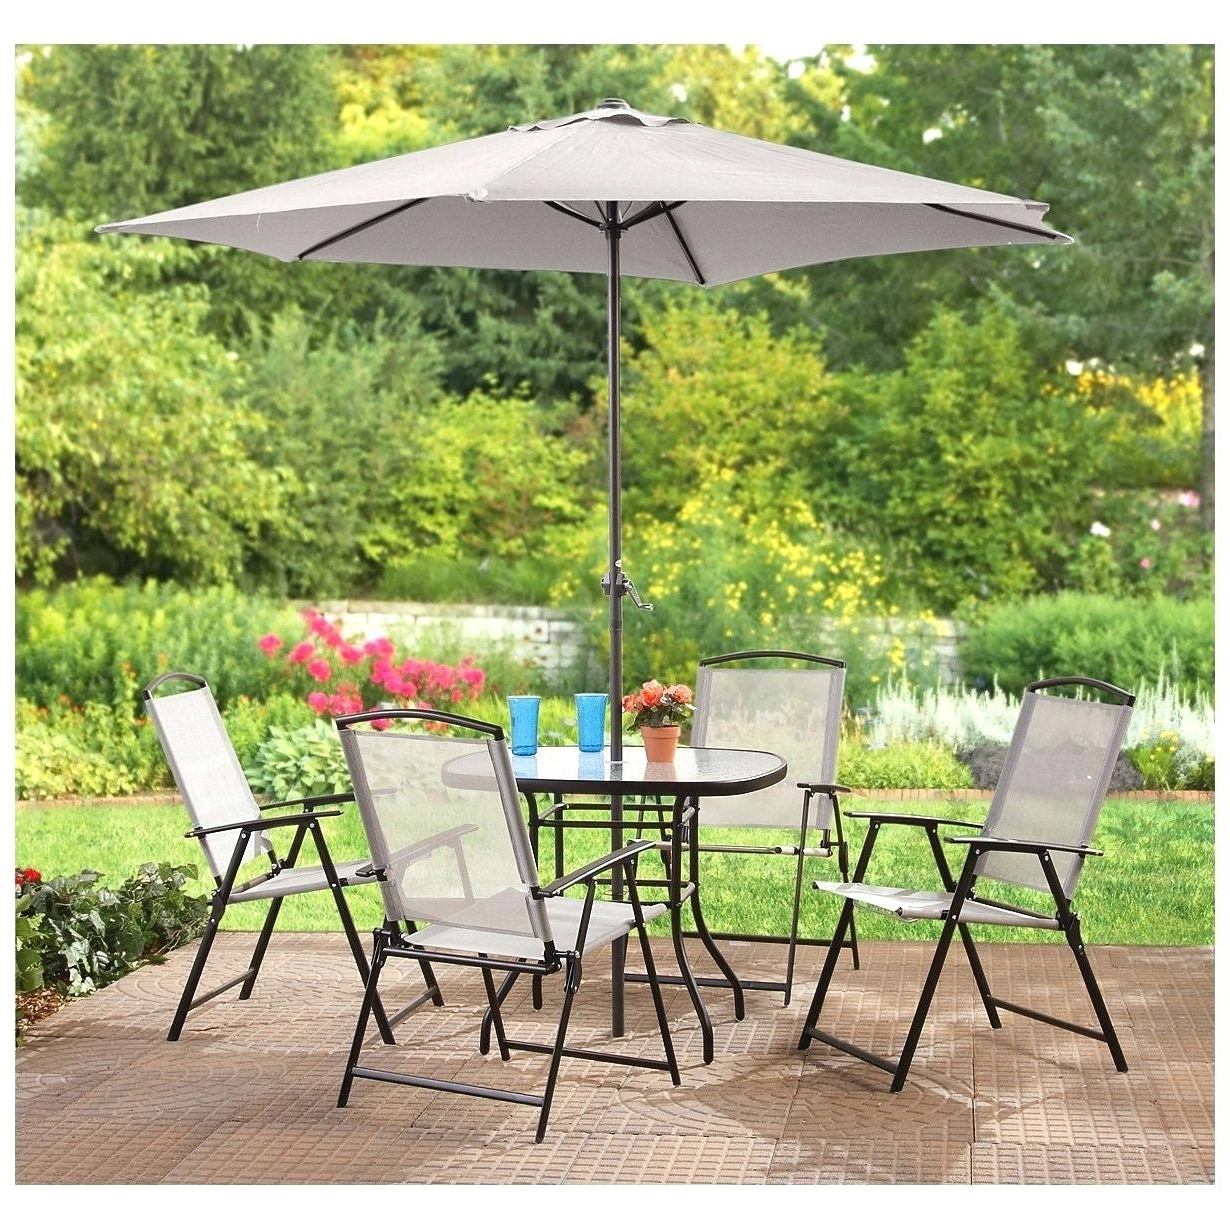 Well Liked Patio Furniture Dining Set Sets Walmart Sale Outdoor With Umbrella In Patio Dining Sets With Umbrellas (View 18 of 20)